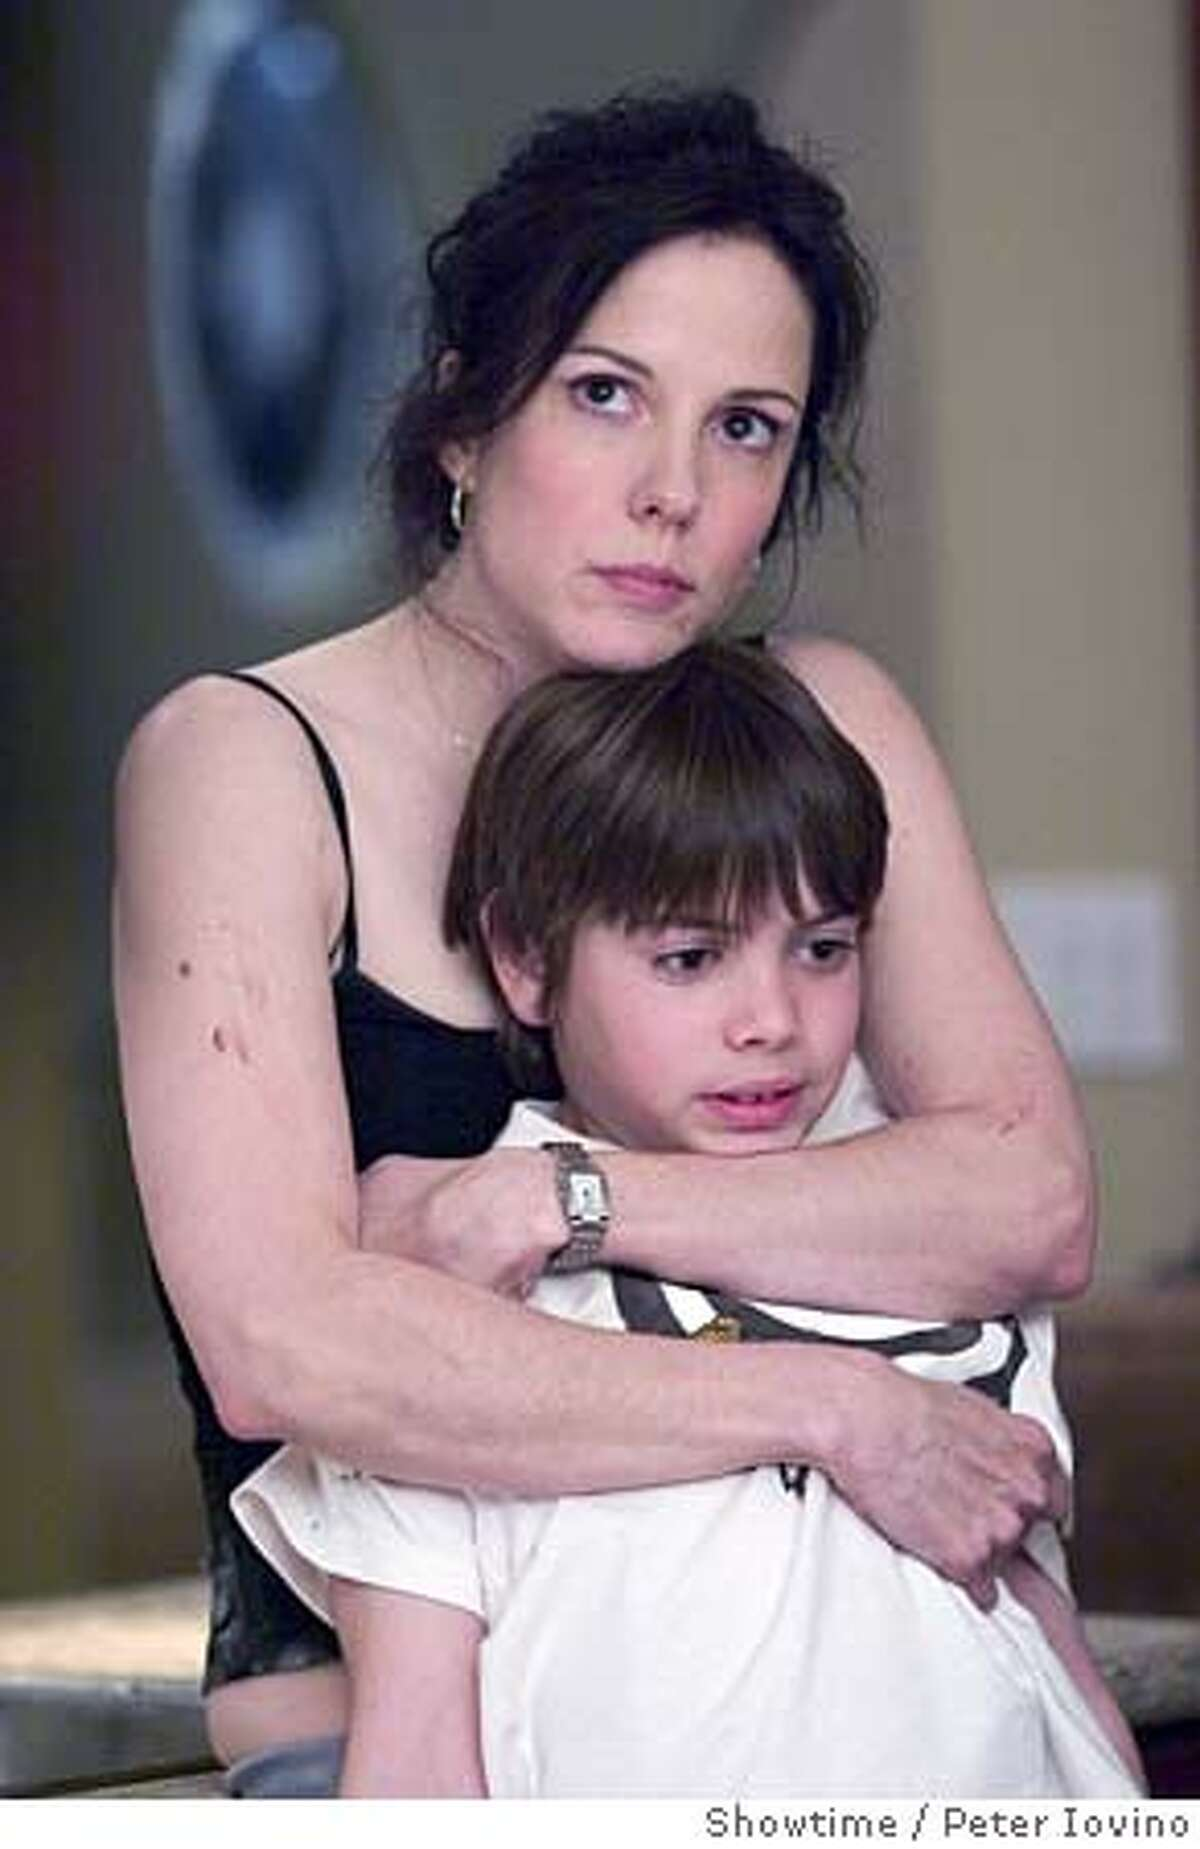 WEEDS05 Mary-Louise Parker as Nancy Botwin and Alexander Gould as Shane Botwin IN Showtime's Weeds. Photo: Peter Iovino/Showtime Photo ID: WEEDS103_00112